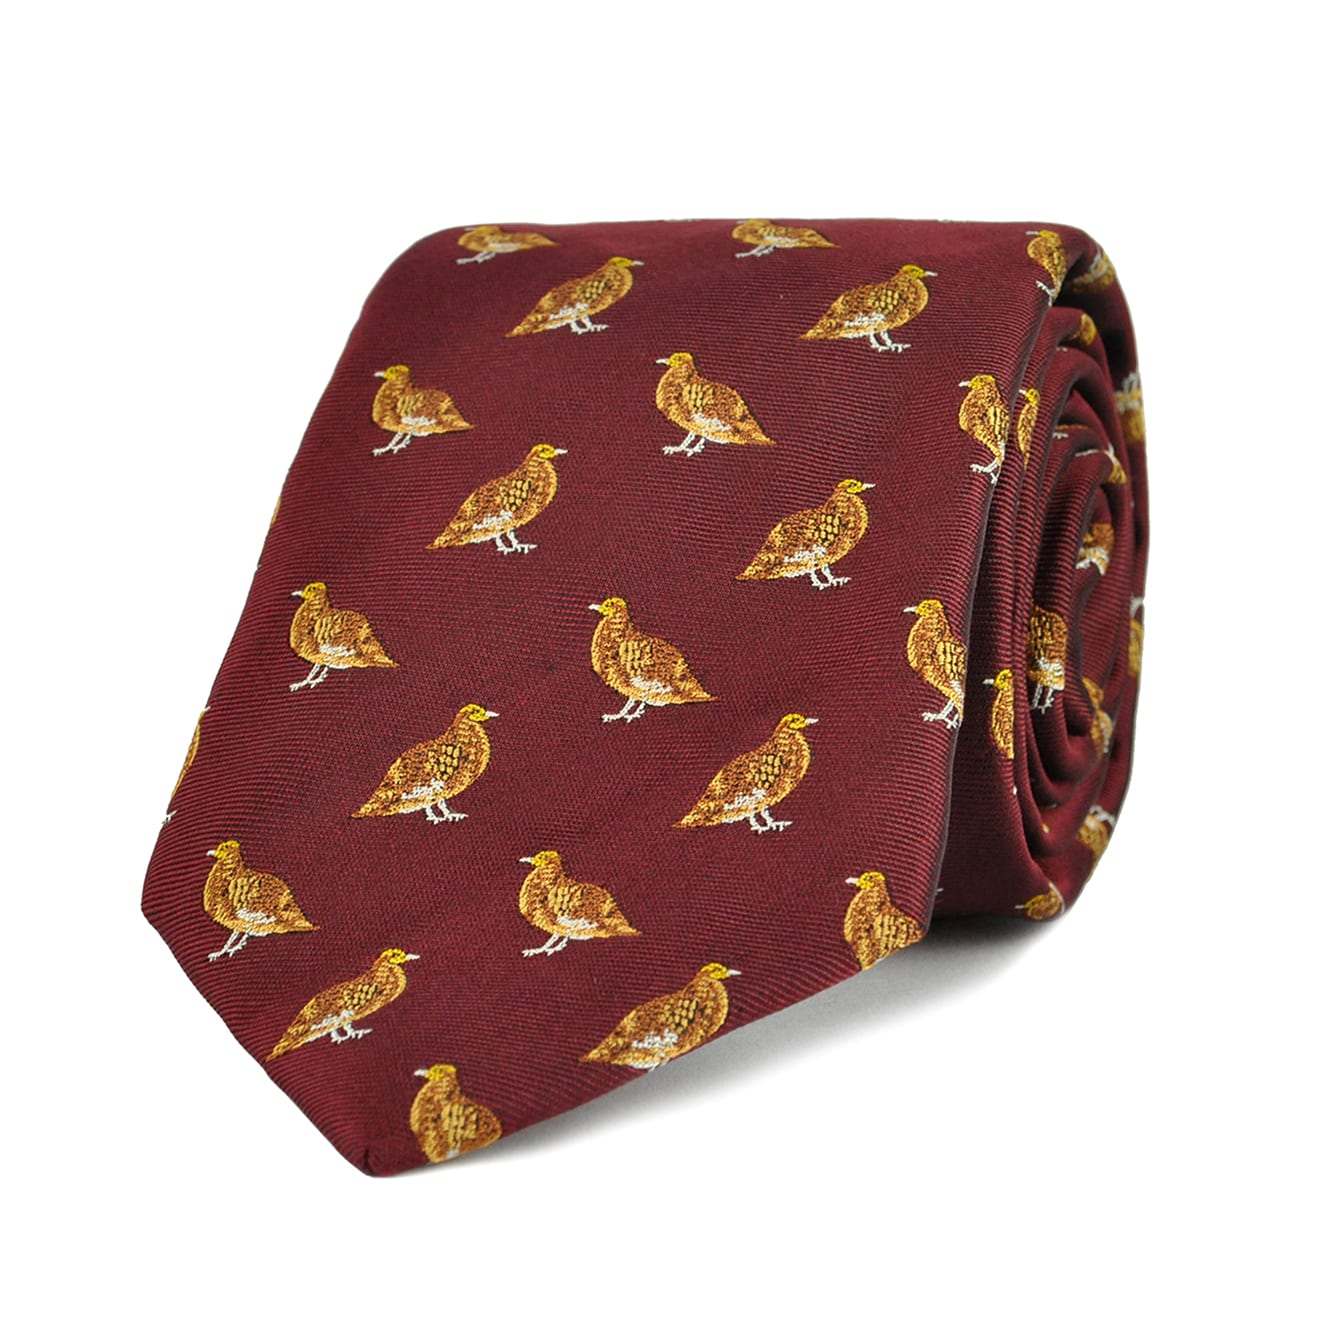 James Purdey Standing Grouse Woven Silk Tie Red